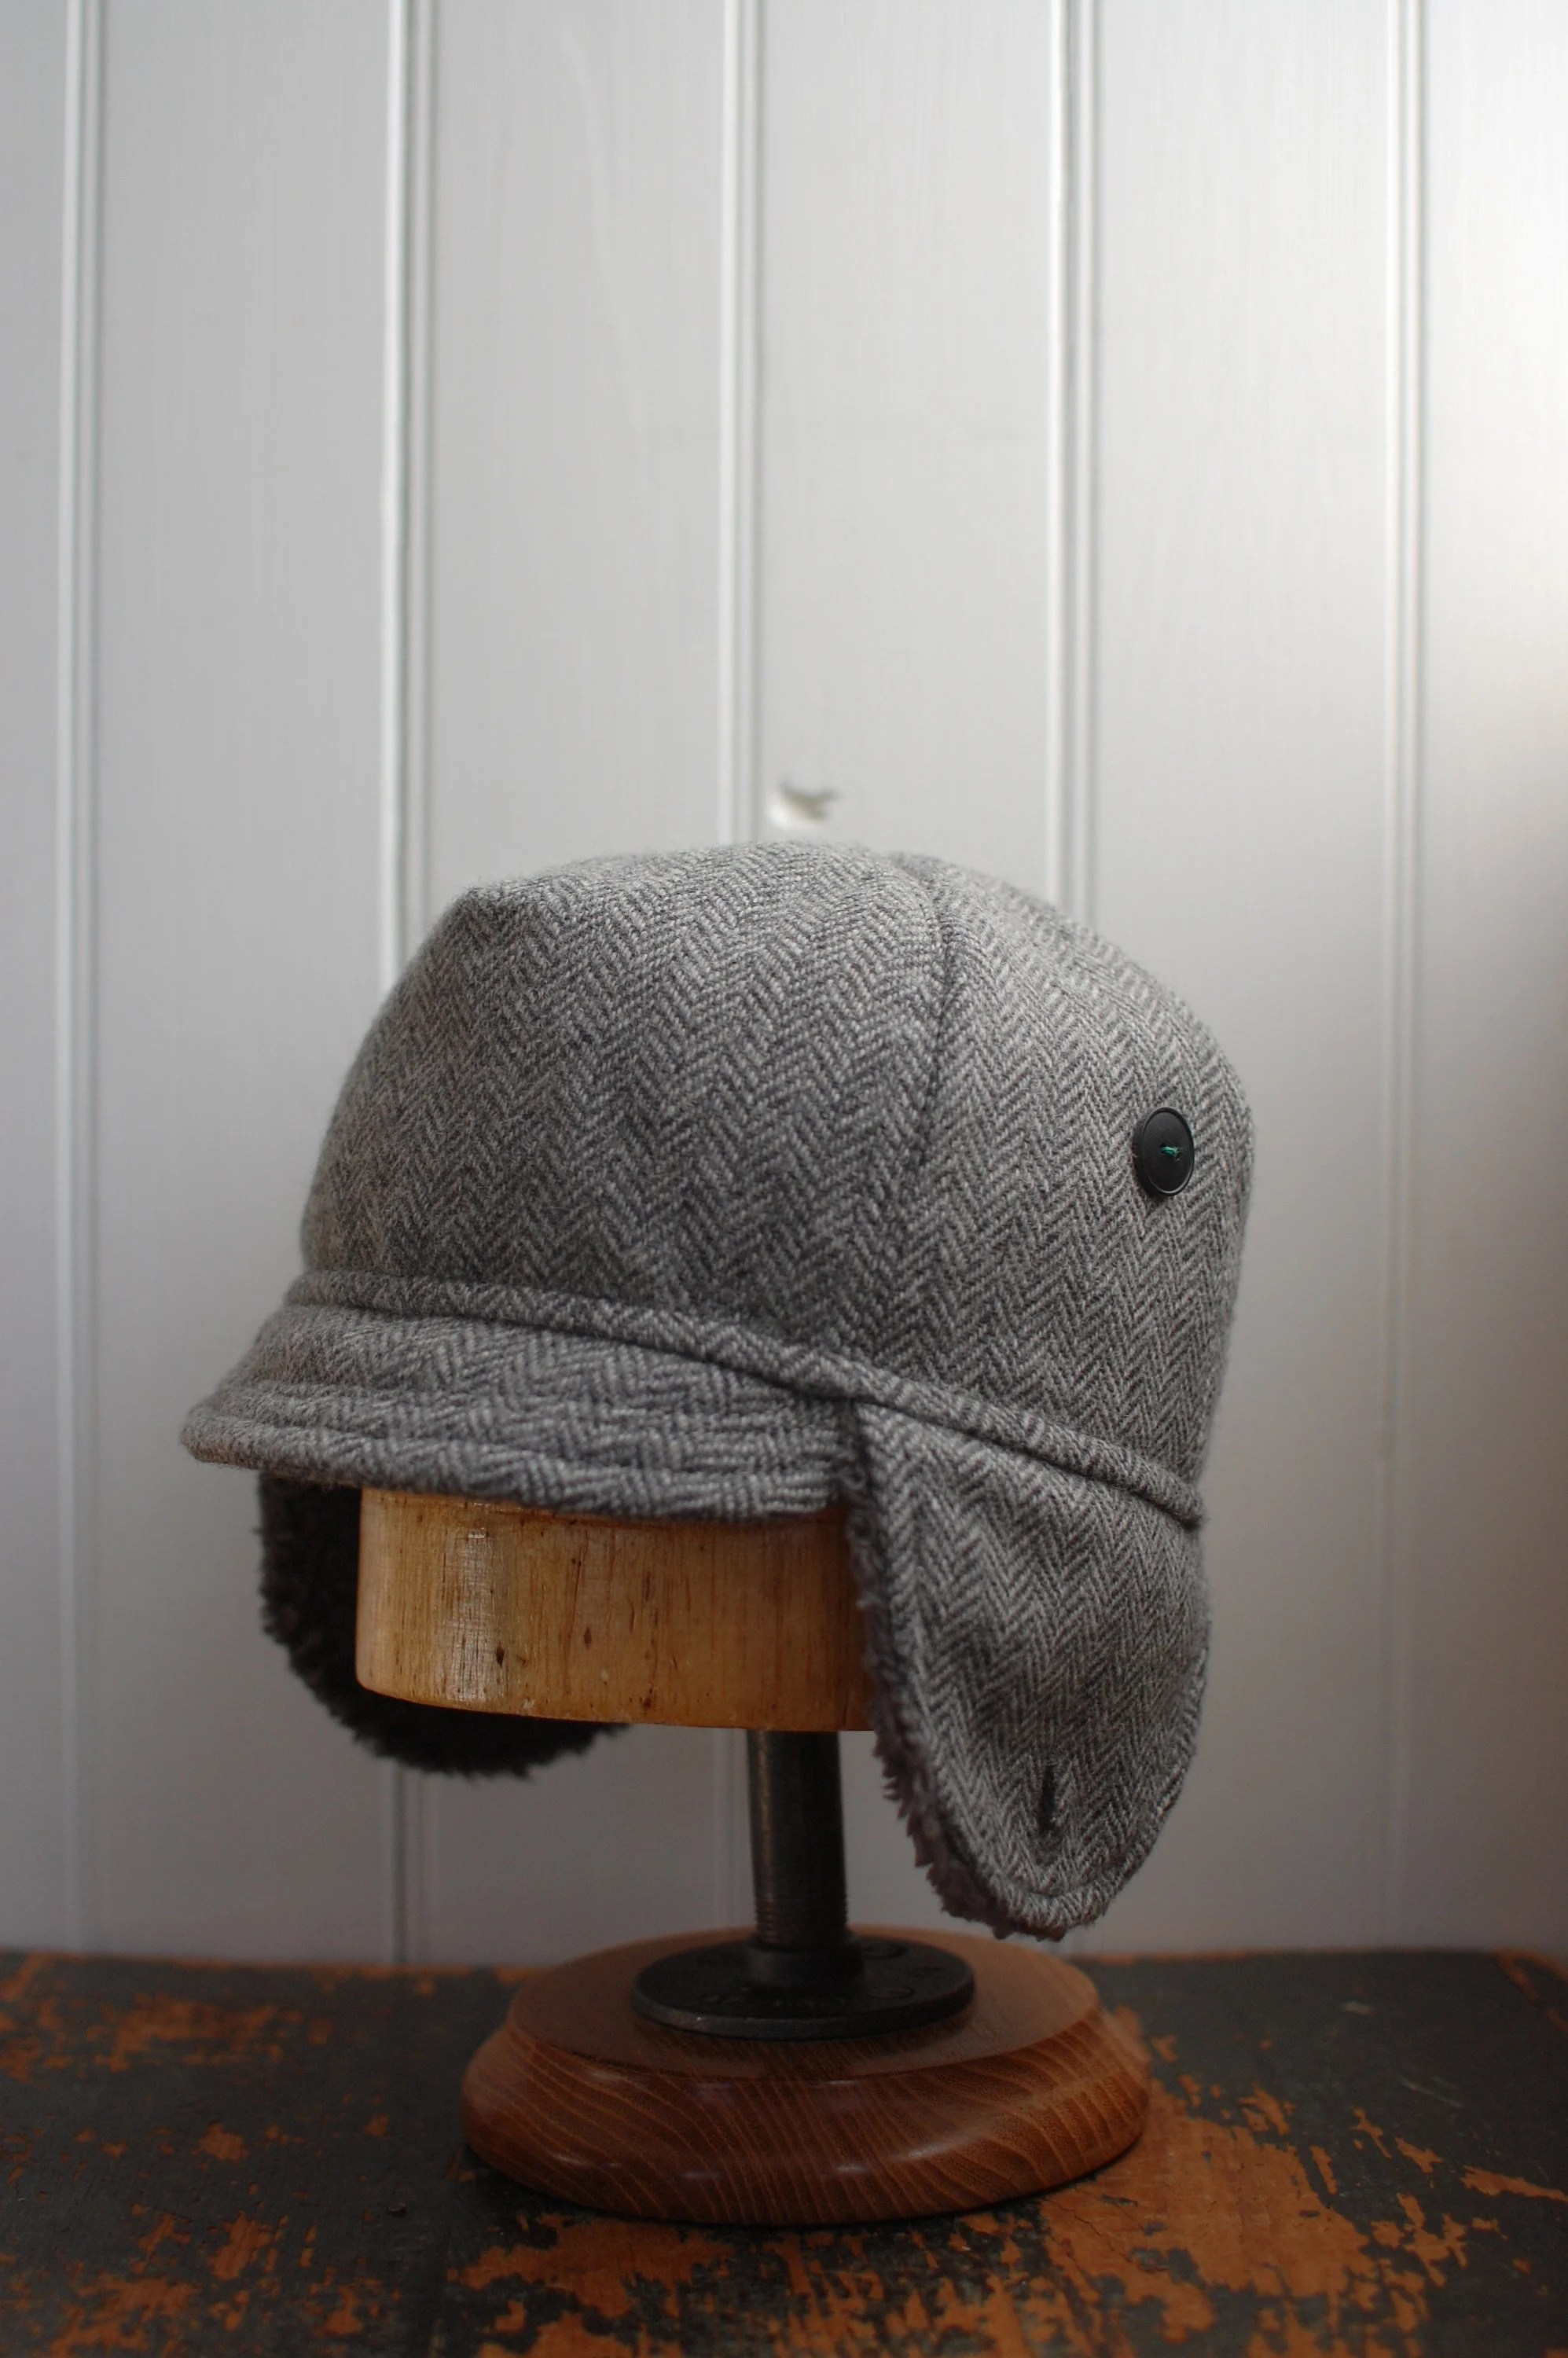 Xl Winter Flapjack Xl Winter Hat For Men Or Women Gray Wool Hat Ear Flap Hat One Of A Kind Hat Made From Recycled Materials